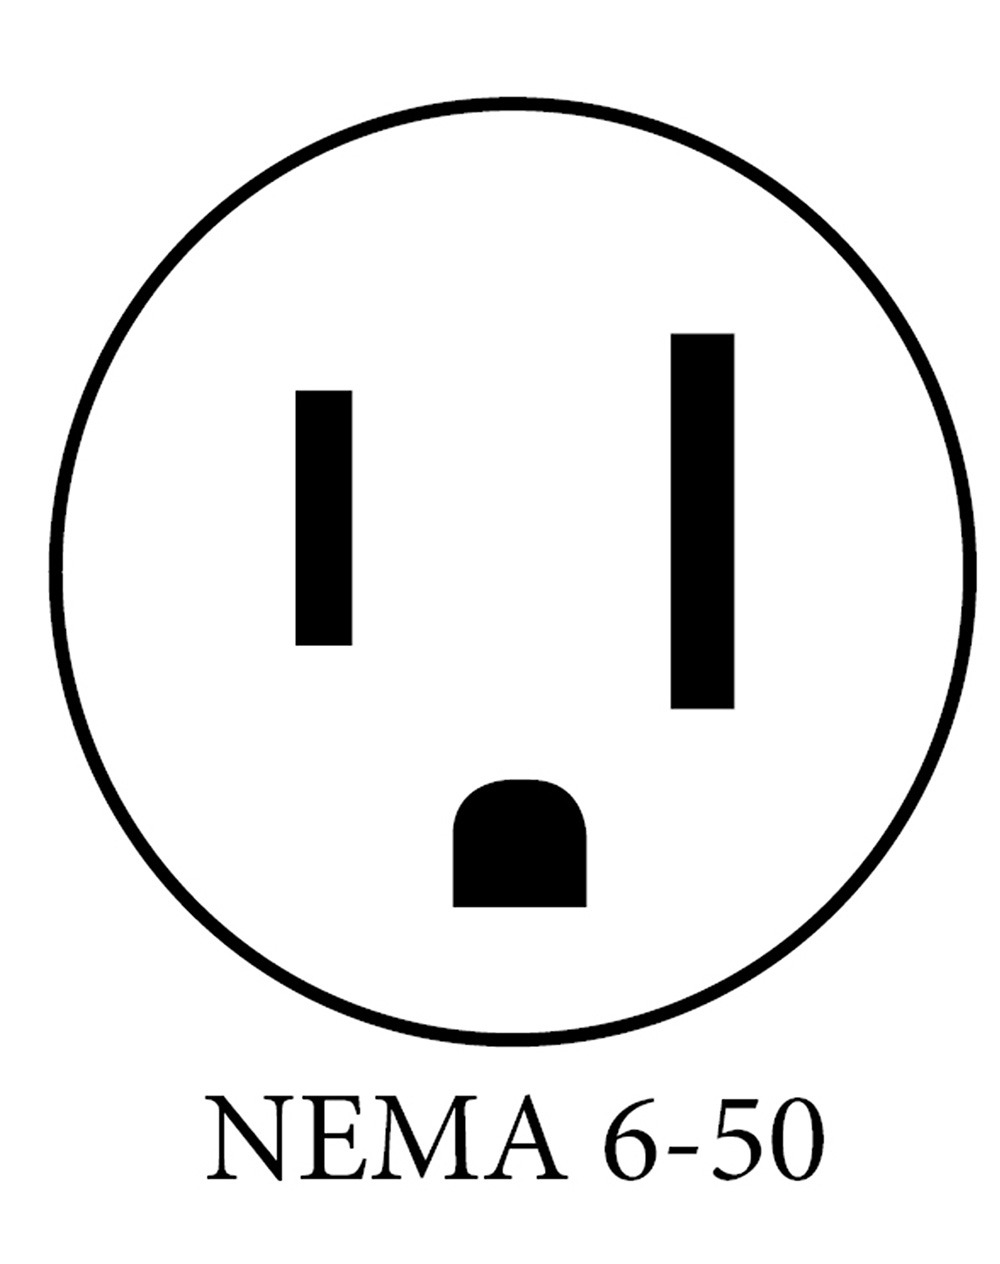 Nema 6 50r Wiring Diagram : 25 Wiring Diagram Images